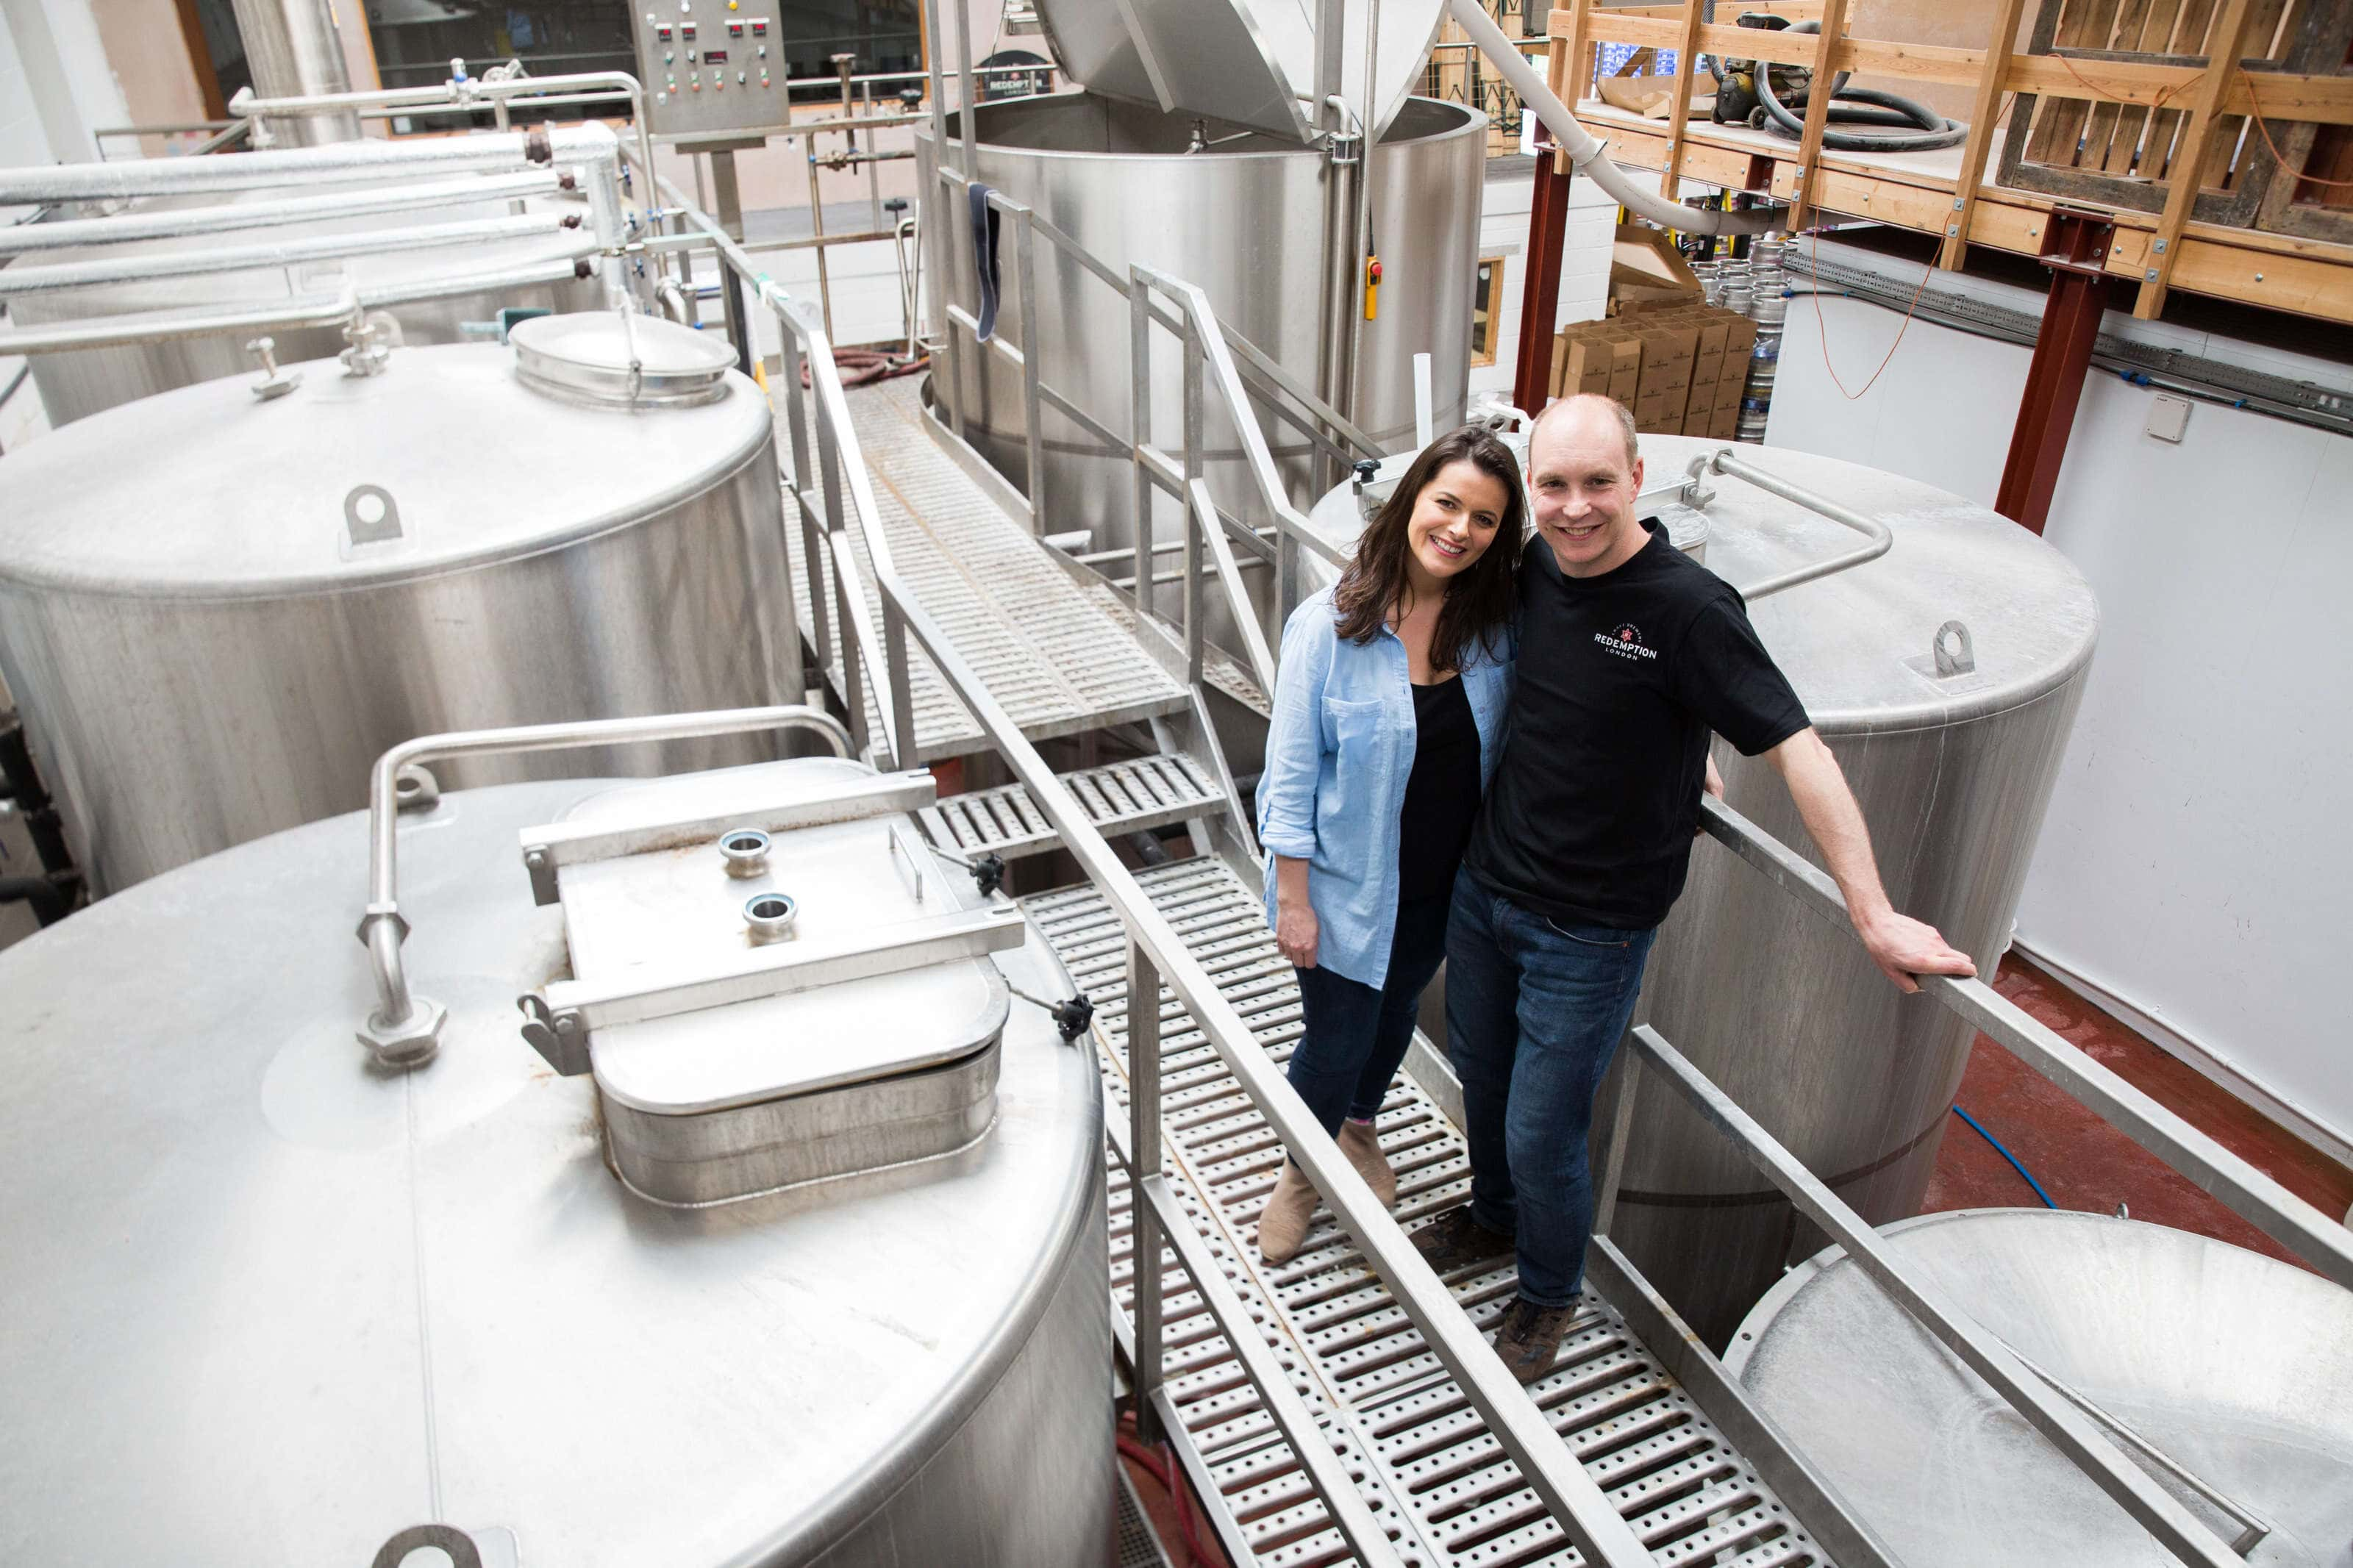 Portrait of Andy and Sam Rigby the owners or redemption brewery stood on the walk way above the beer vats in the brewery.